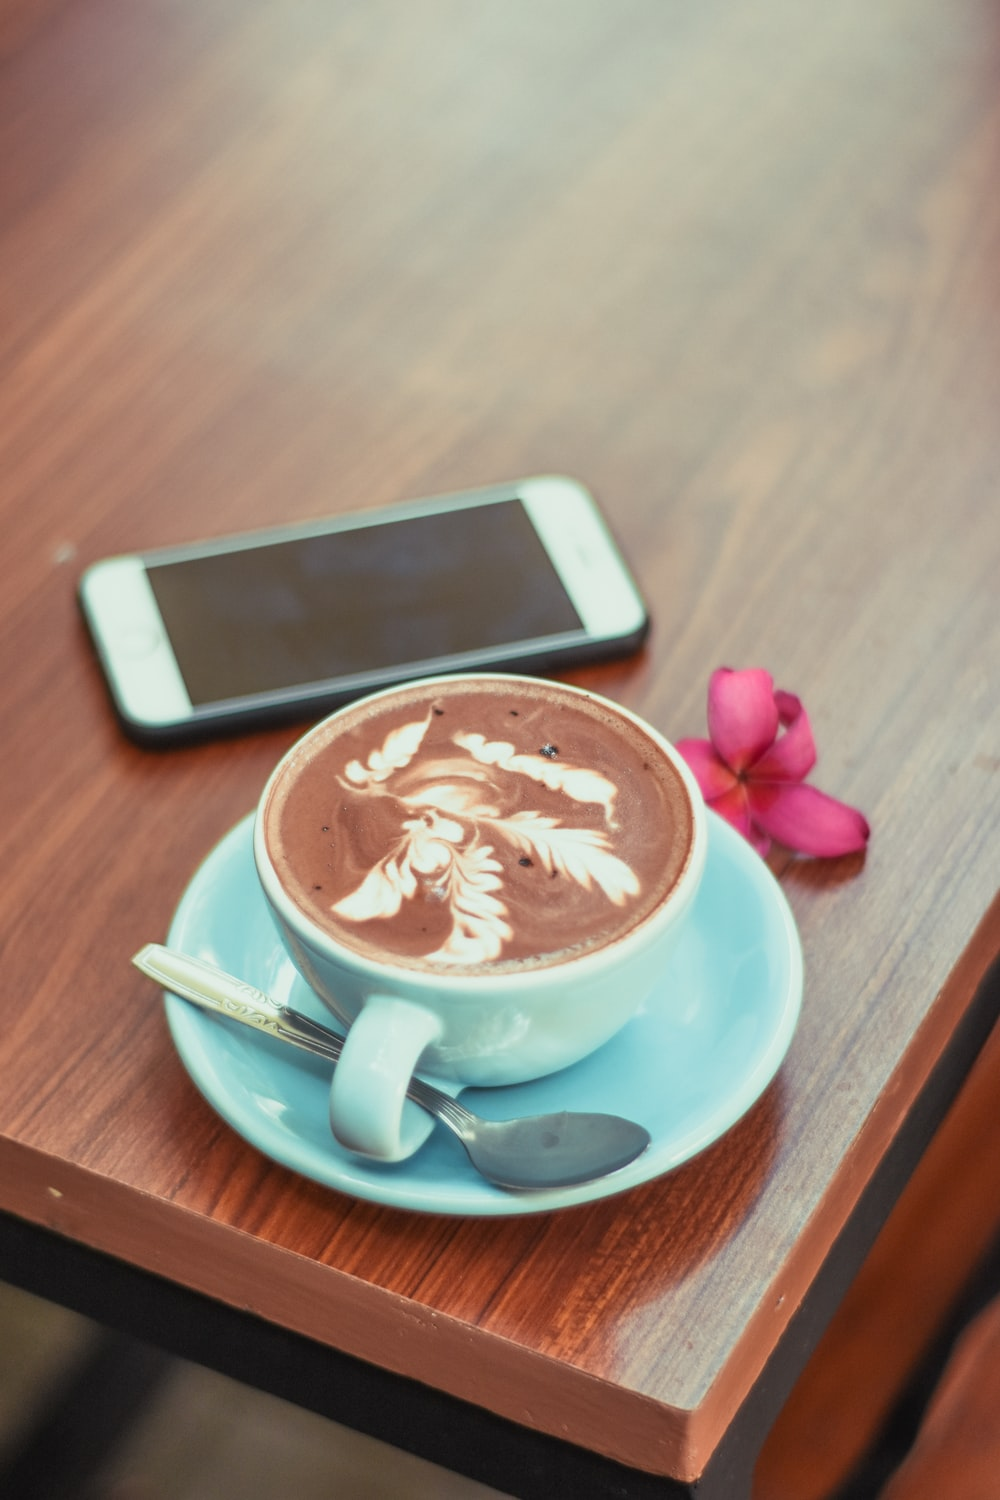 phone near a blue coffee cup with coffee and spoon close-up photography